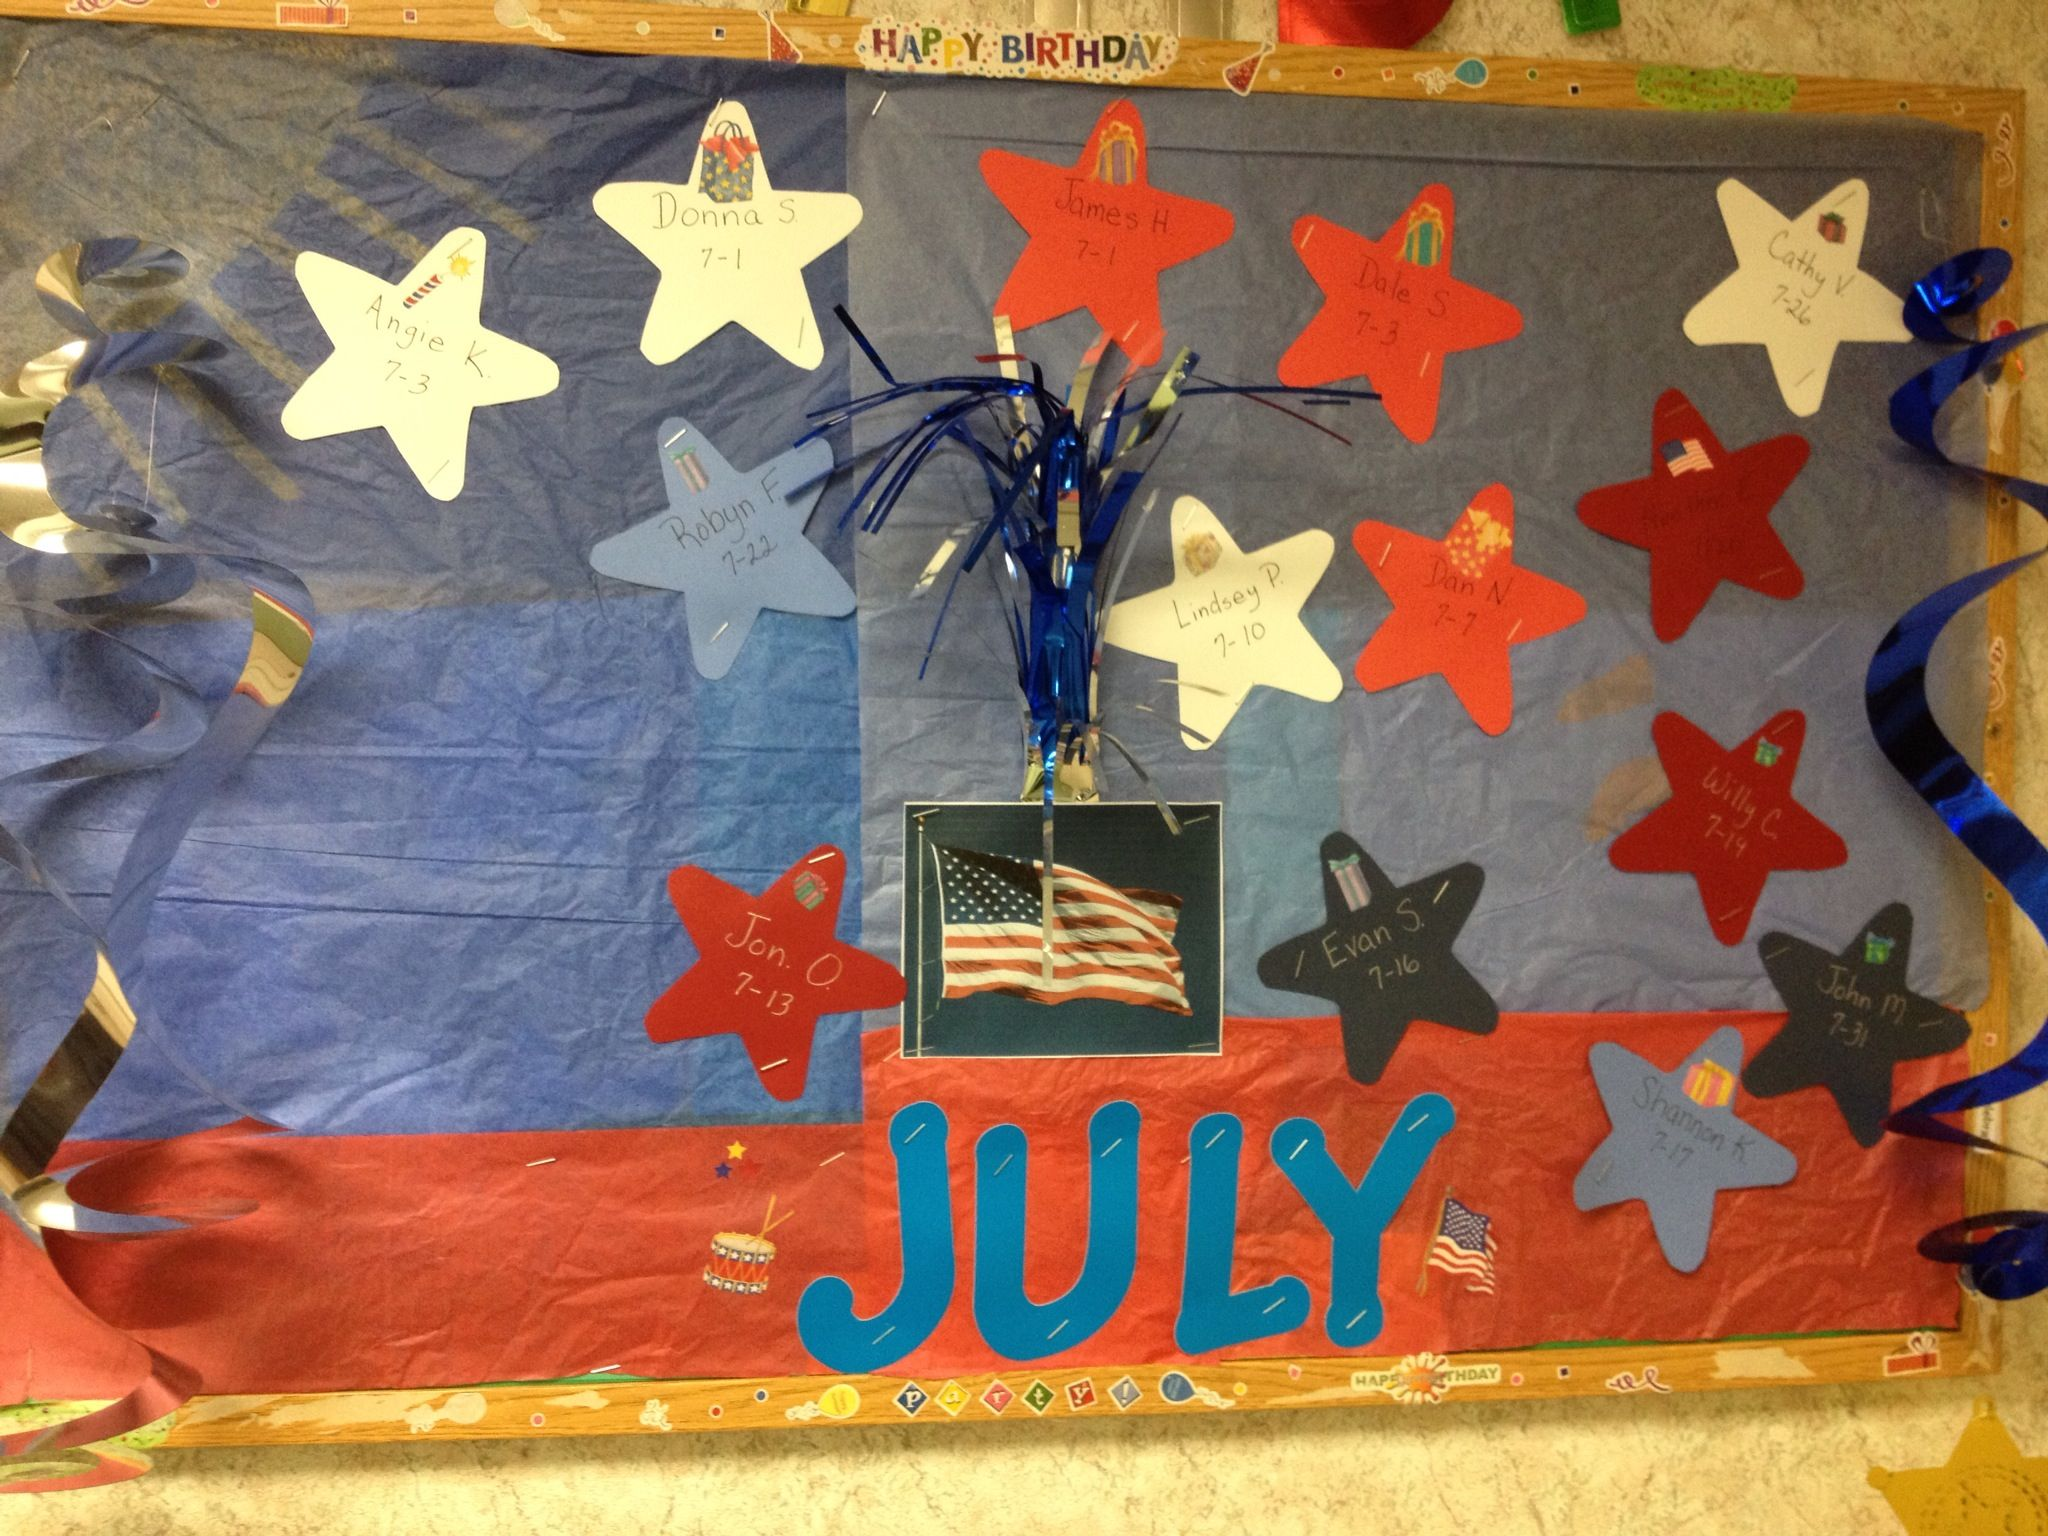 Work July birthday board Used old birthday decorations and